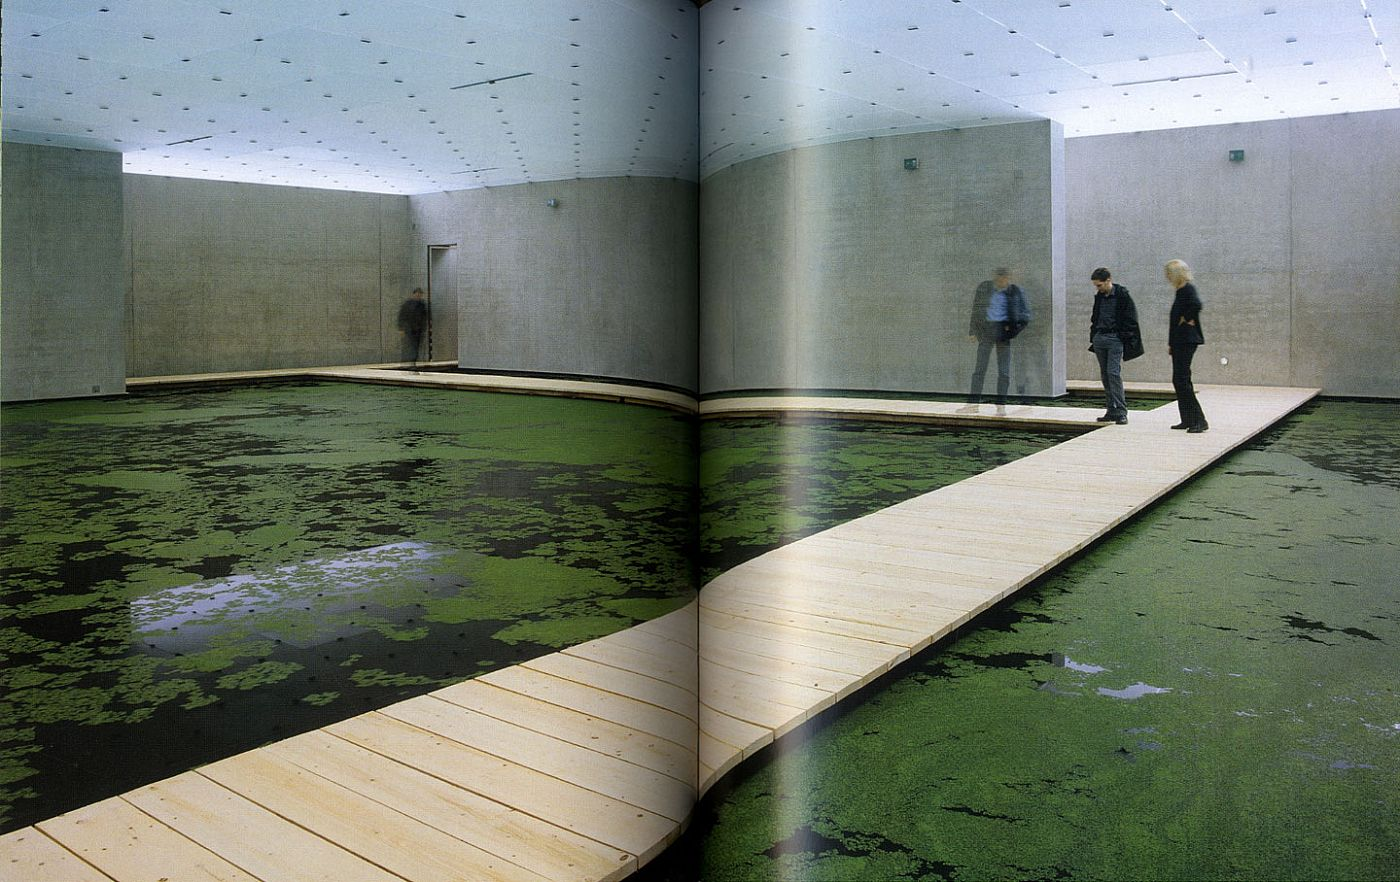 Olafur Eliasson: The Mediated Motion (in cooperation with Günther Vogt, landscape architect)